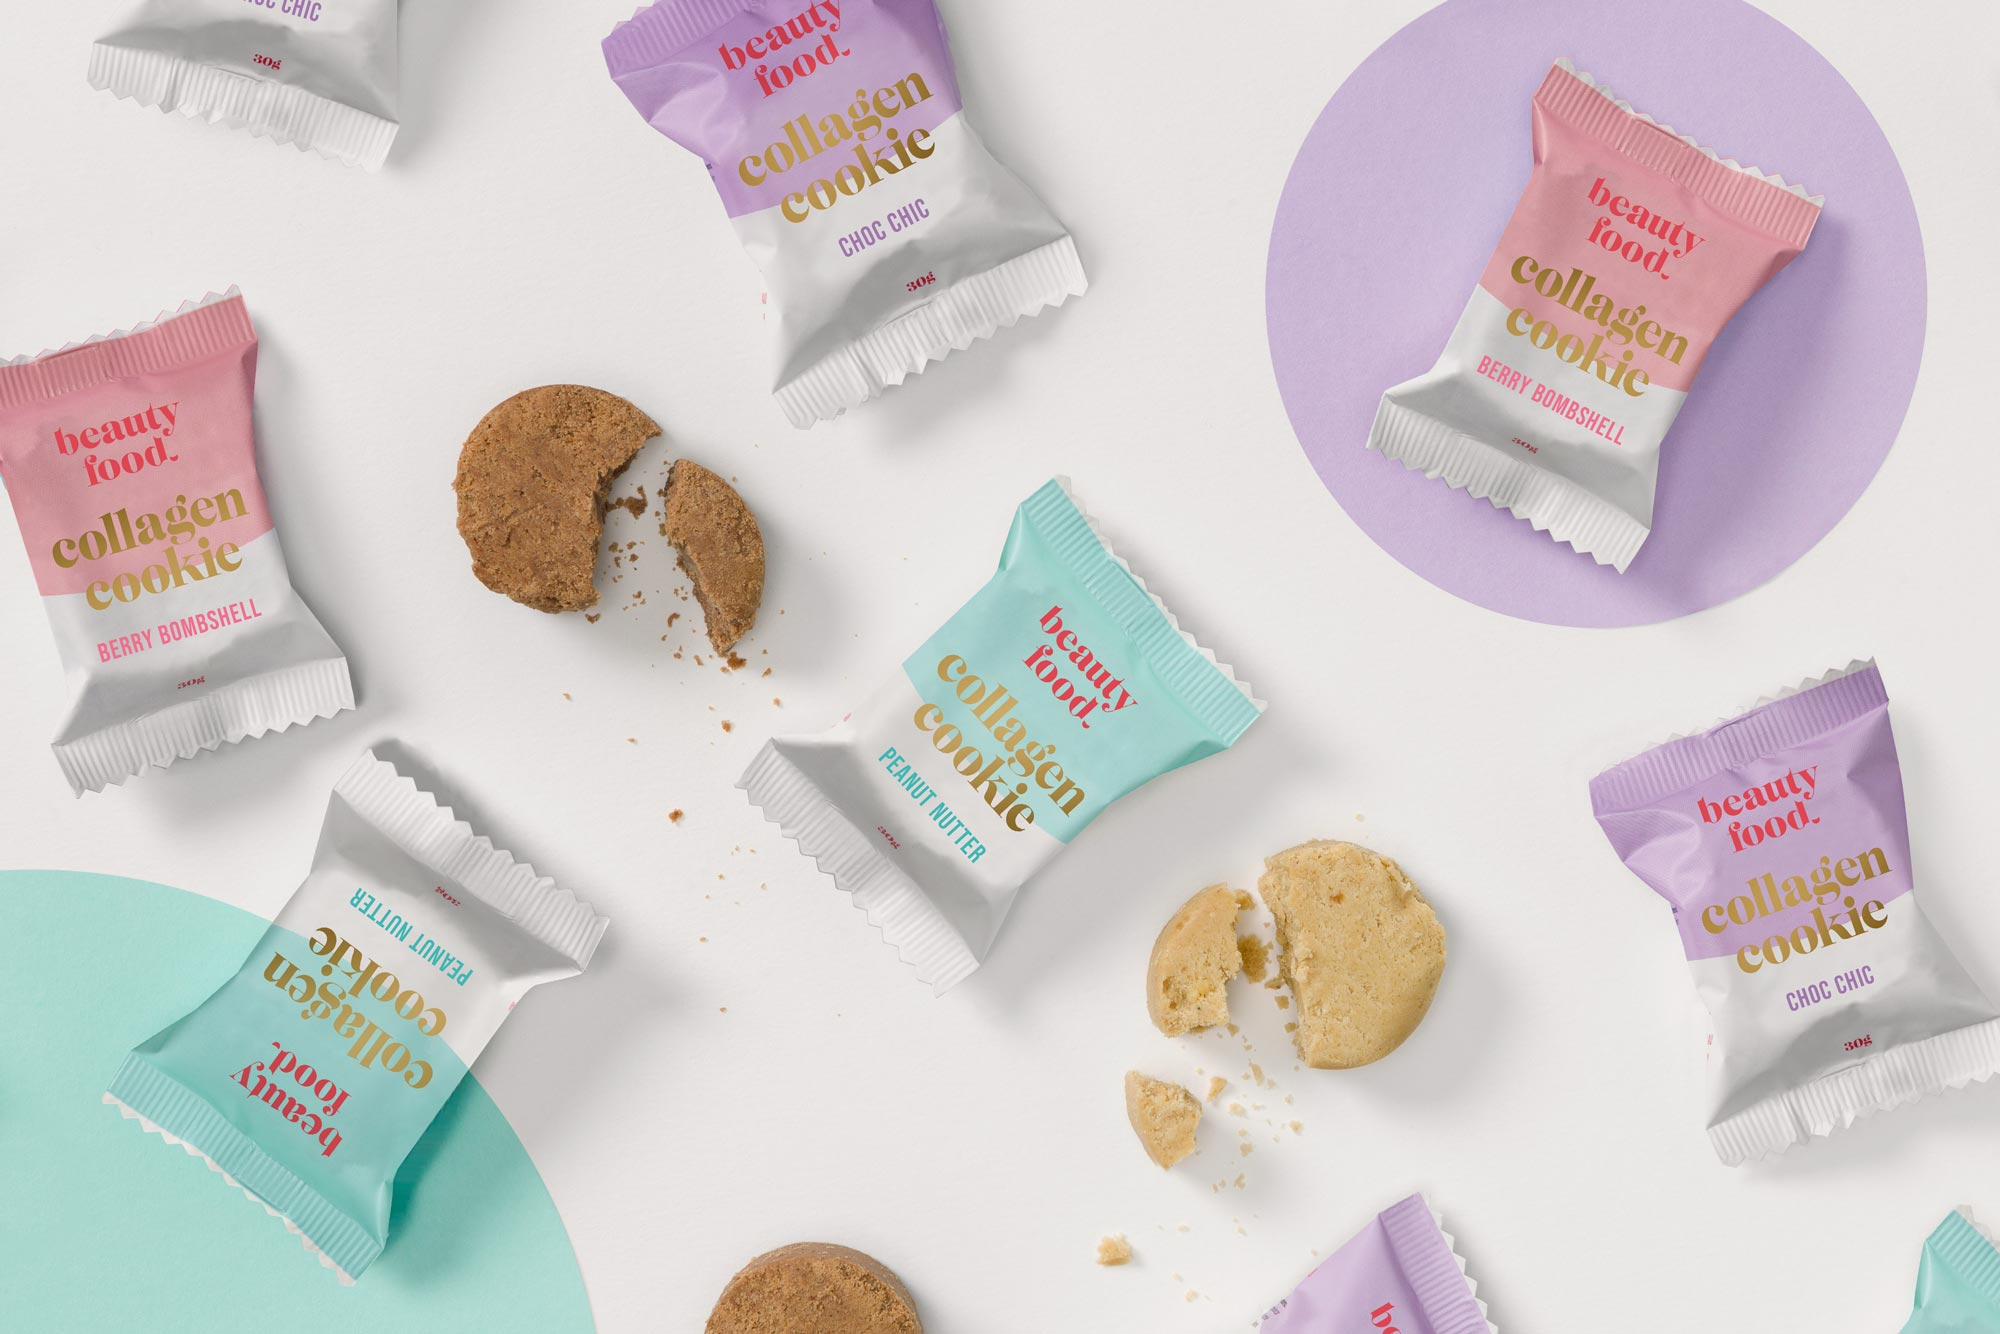 A flatly of multiple Beauty Food collagen cookies, including a mix of flavours. Some cookies have been opened and sit crumbled between the closed packets.